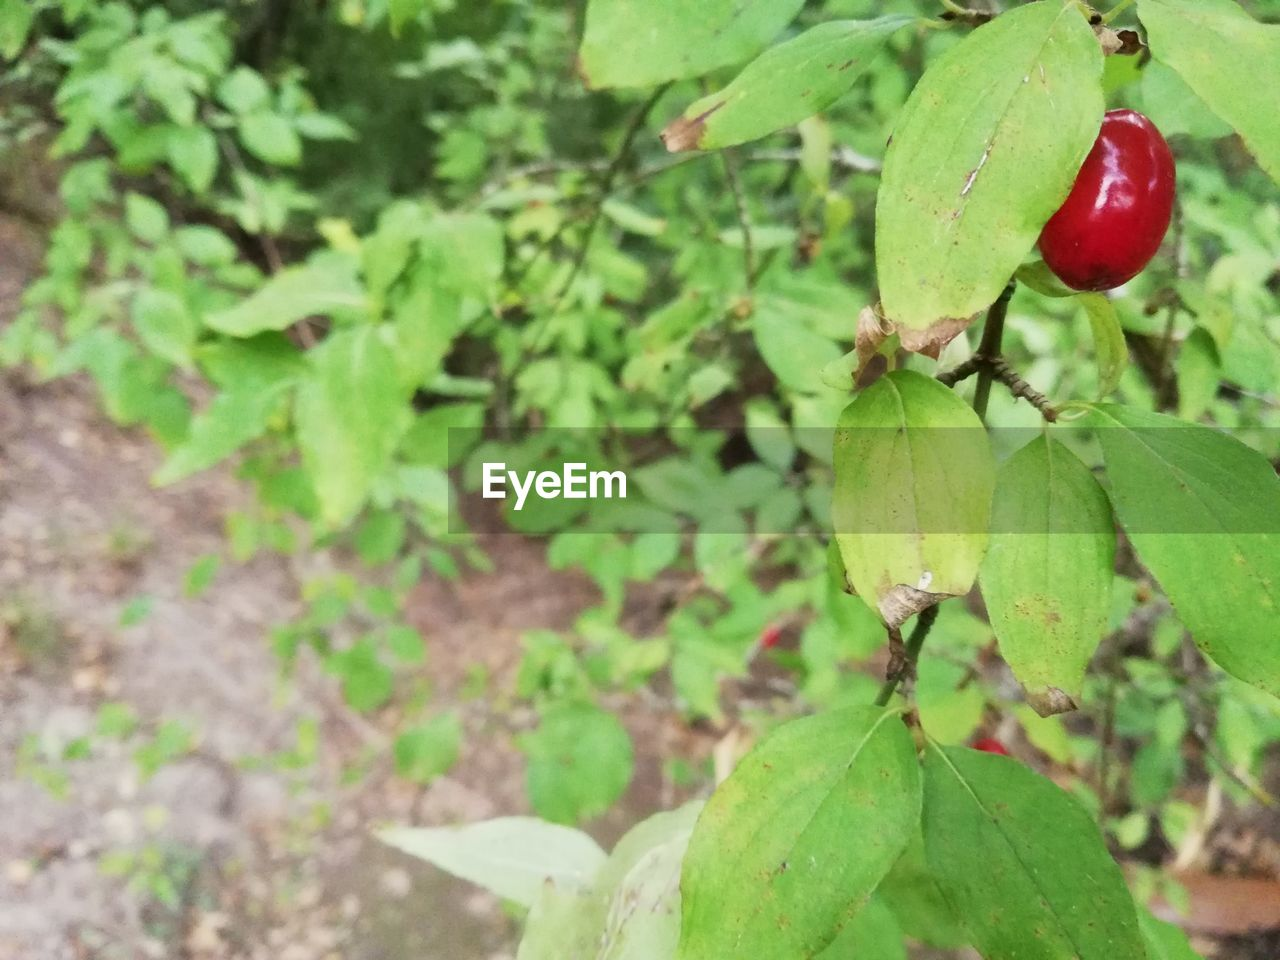 leaf, plant part, green color, growth, food and drink, plant, food, fruit, healthy eating, close-up, freshness, nature, red, day, no people, beauty in nature, tree, focus on foreground, wellbeing, outdoors, ripe